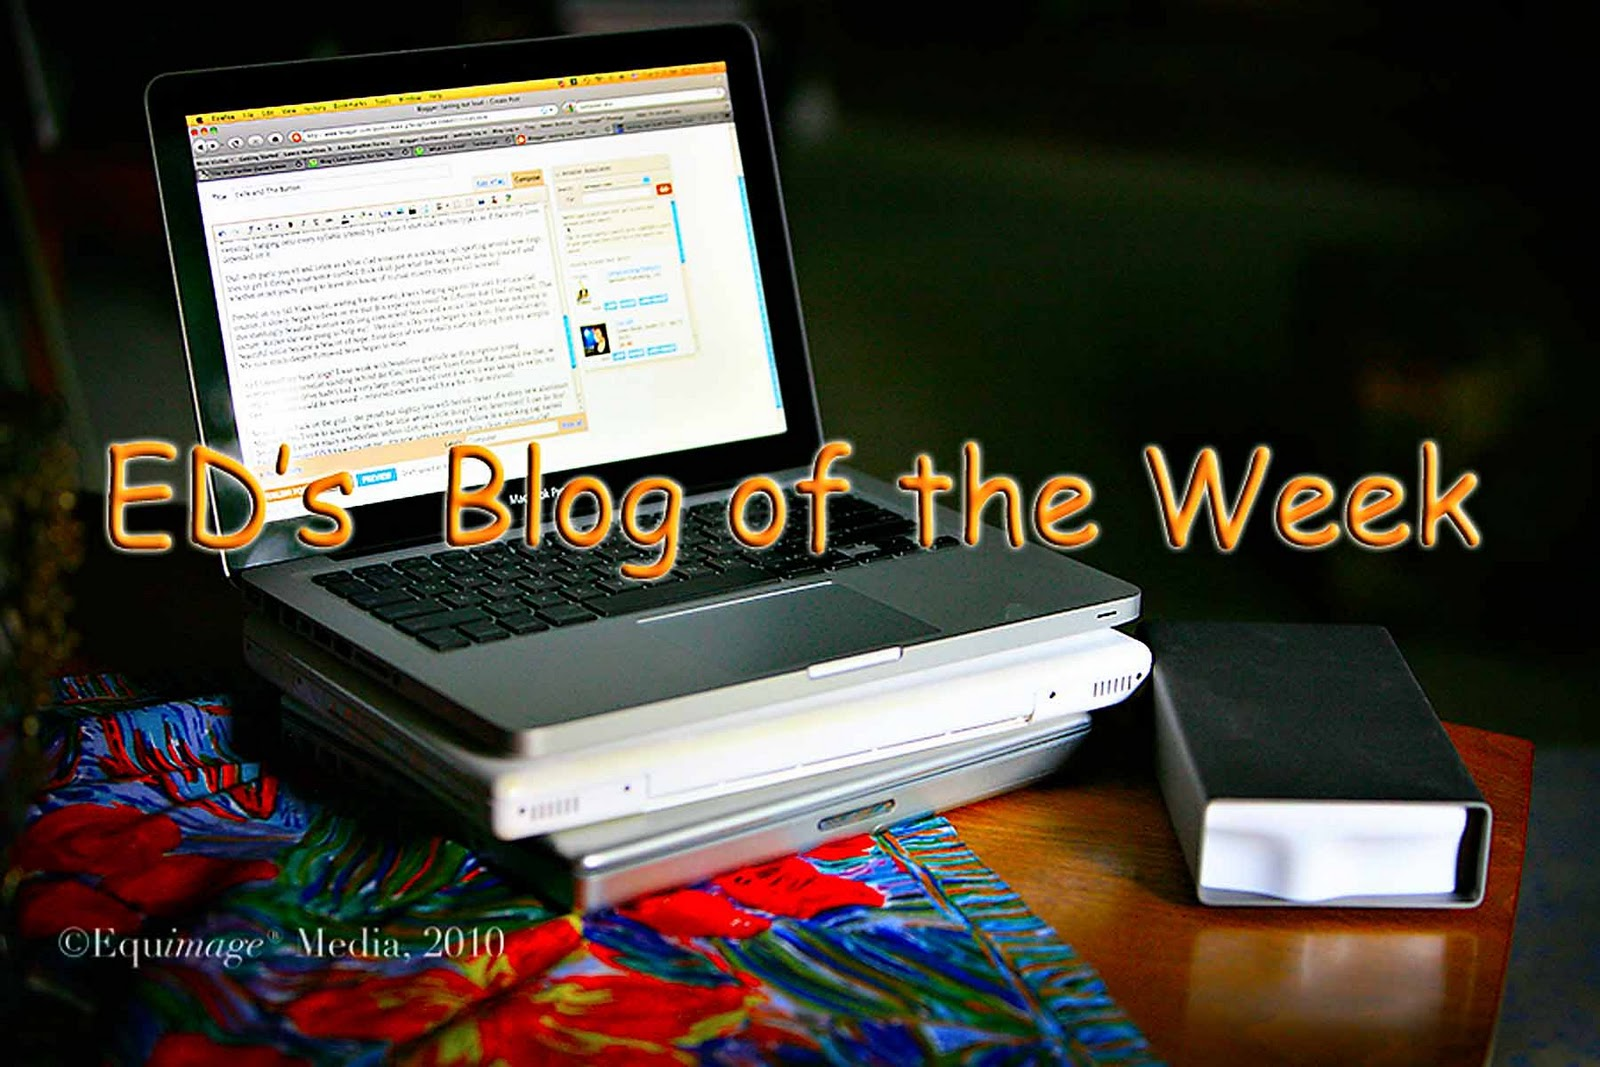 http://4.bp.blogspot.com/_s0XckXa2zWg/TU_u1R0bTbI/AAAAAAAACWU/u6GHgJnm0iU/s1600/_MG_8130-blog-of-the-week4x.jpg